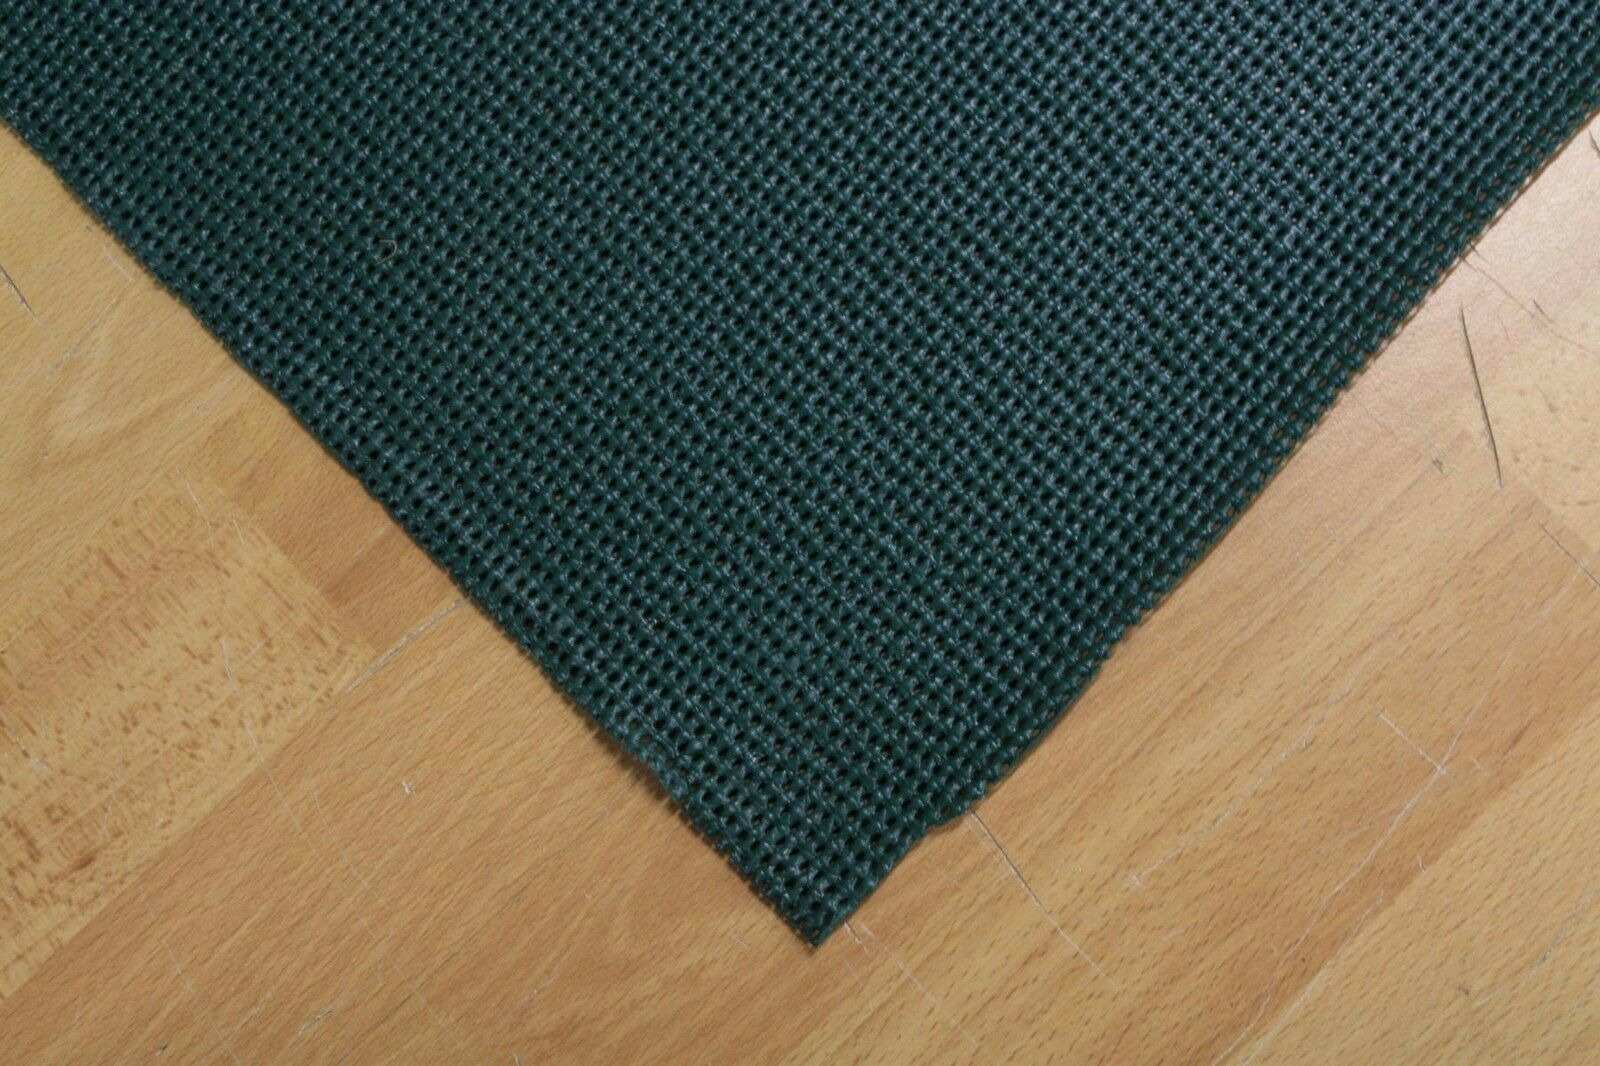 Zeltteppich Campingteppich Vorzeltteppich green 250 x 300 cm Made in Germany